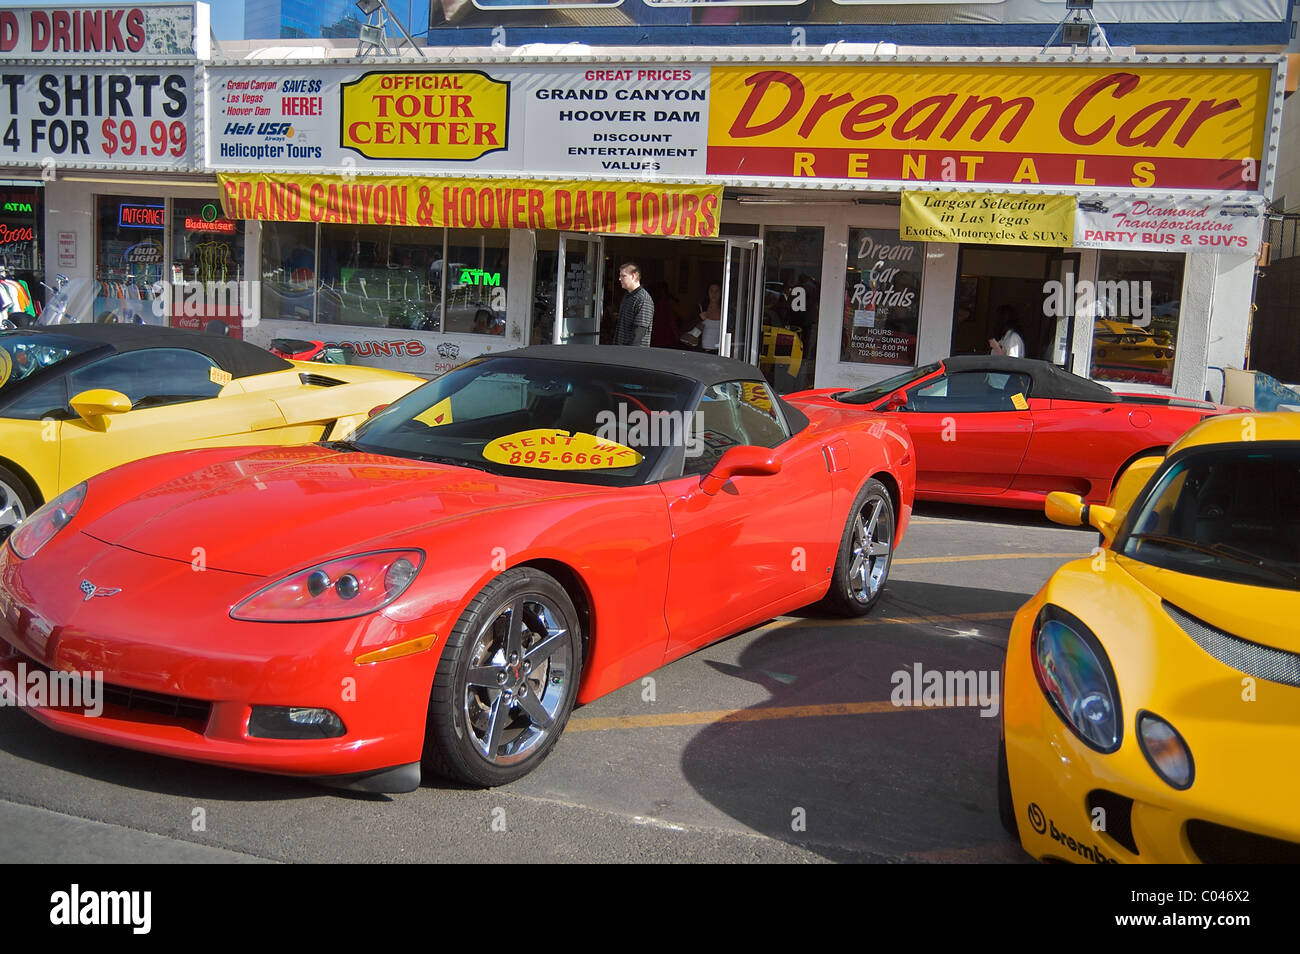 Sports cars for rent on the Las Vegas Strip - Stock Image